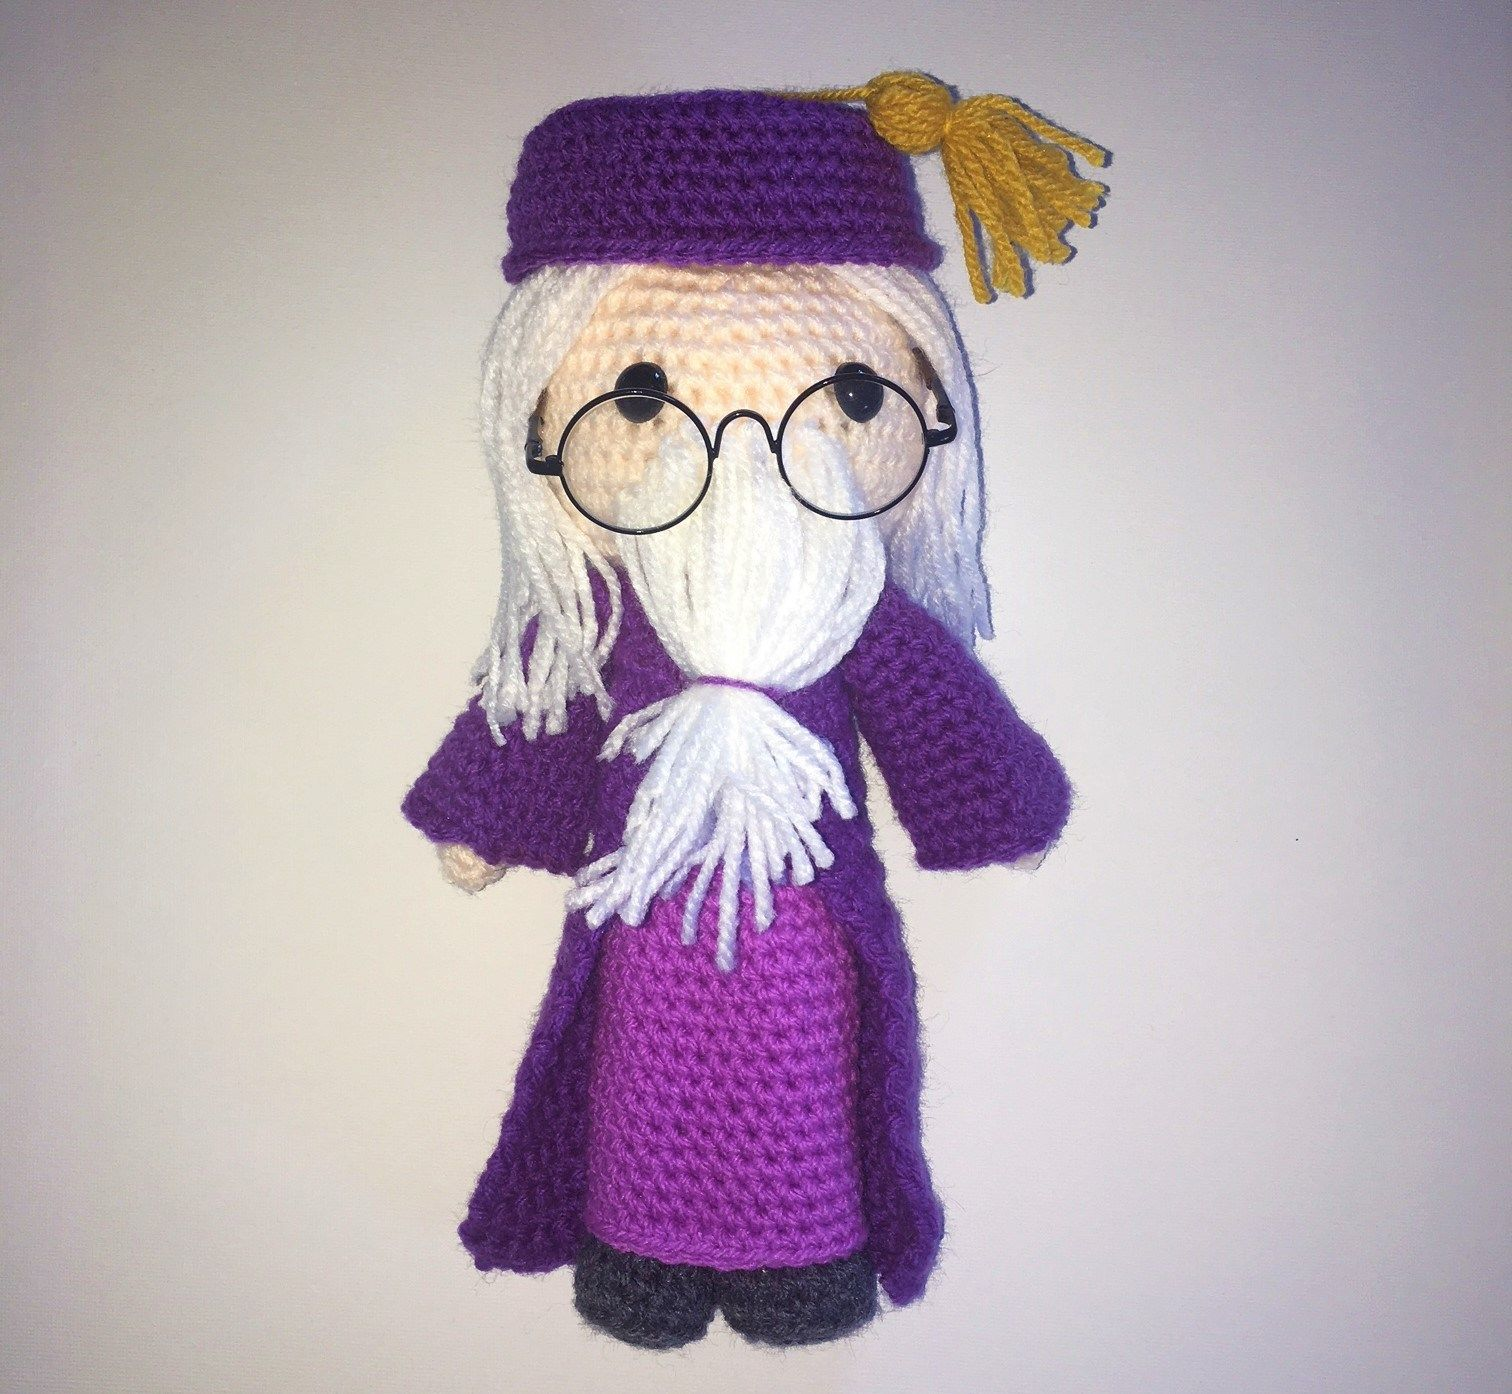 Dumbledore inspired 32 cms soft toy Harry Potter Wizard doll KNITTING PATTERN